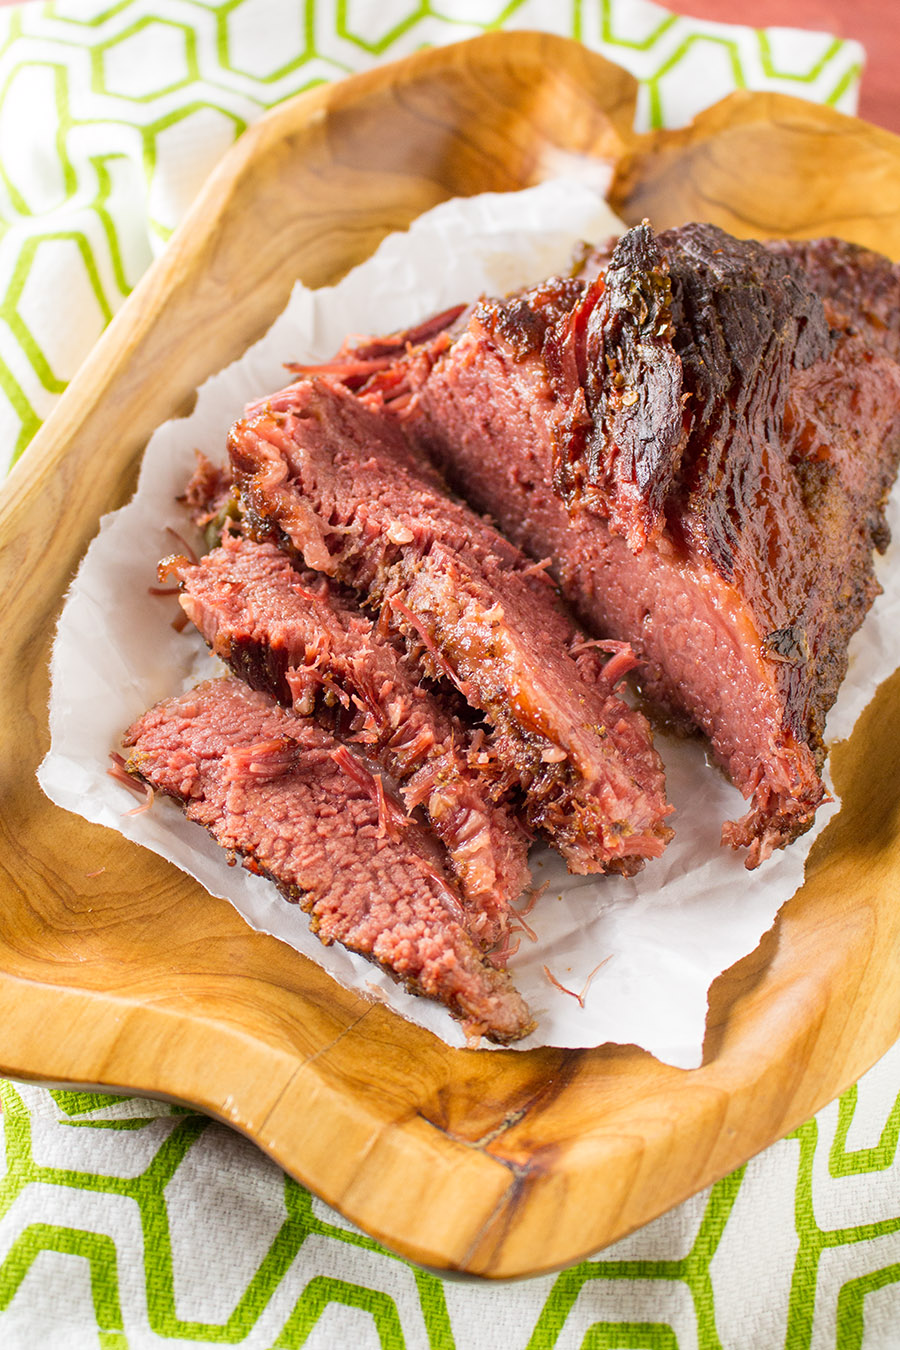 Delicious, Slow Cooked, Tender Corned Beef